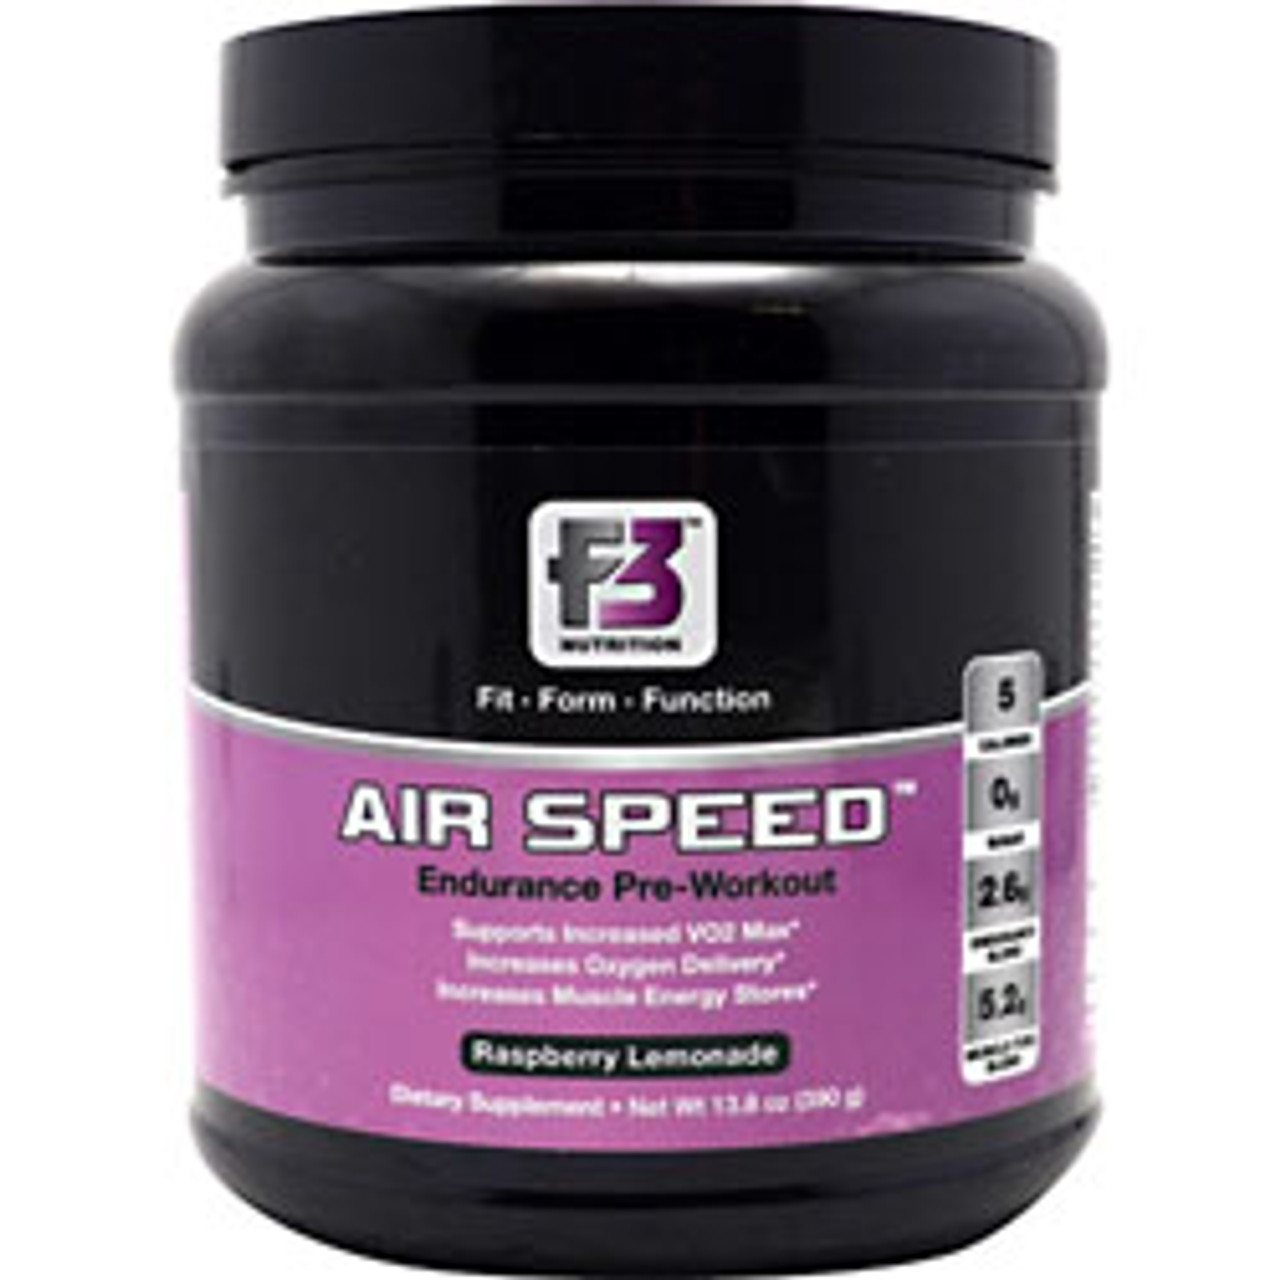 Air Speed 390g F3 Nutrition